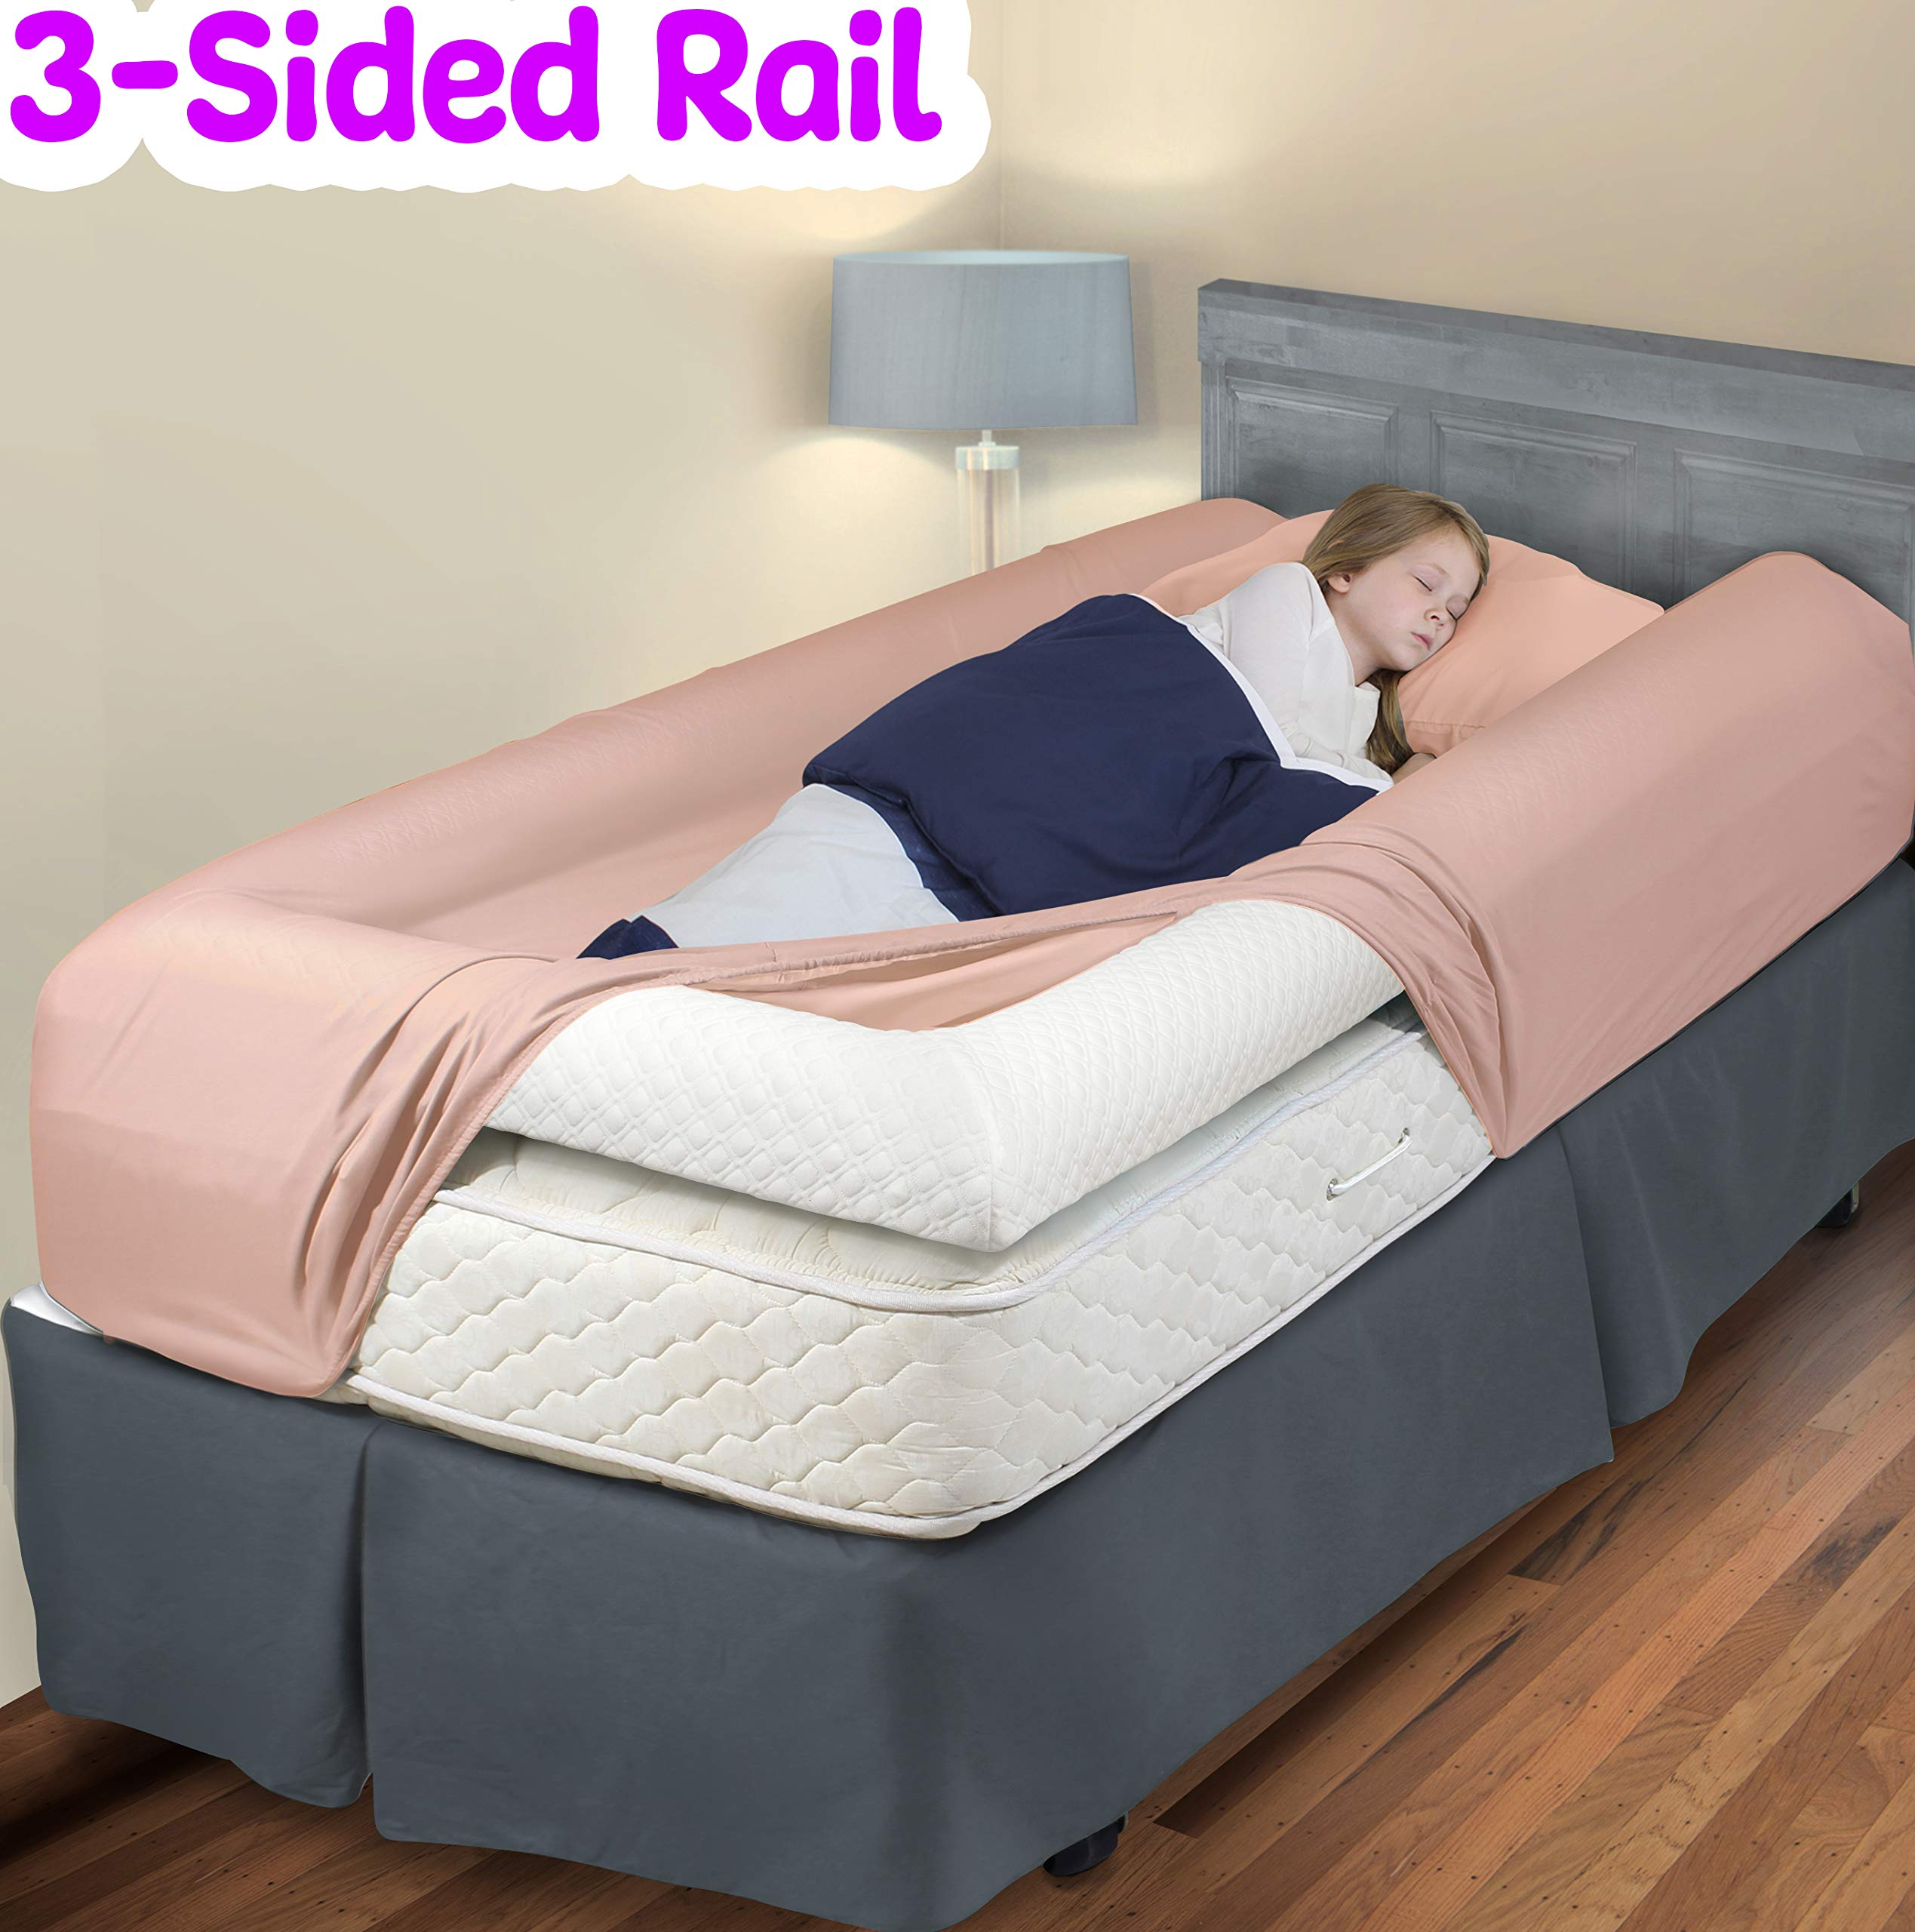 3-Sided Bed Rail for Toddler | Soft Foam Bed Bumper for Kids | Protects Your Child from All Sides! | Baby Bed Guard | Child Bed Safety Side Rails with Water Resistant Washable Cover (Twin Size)